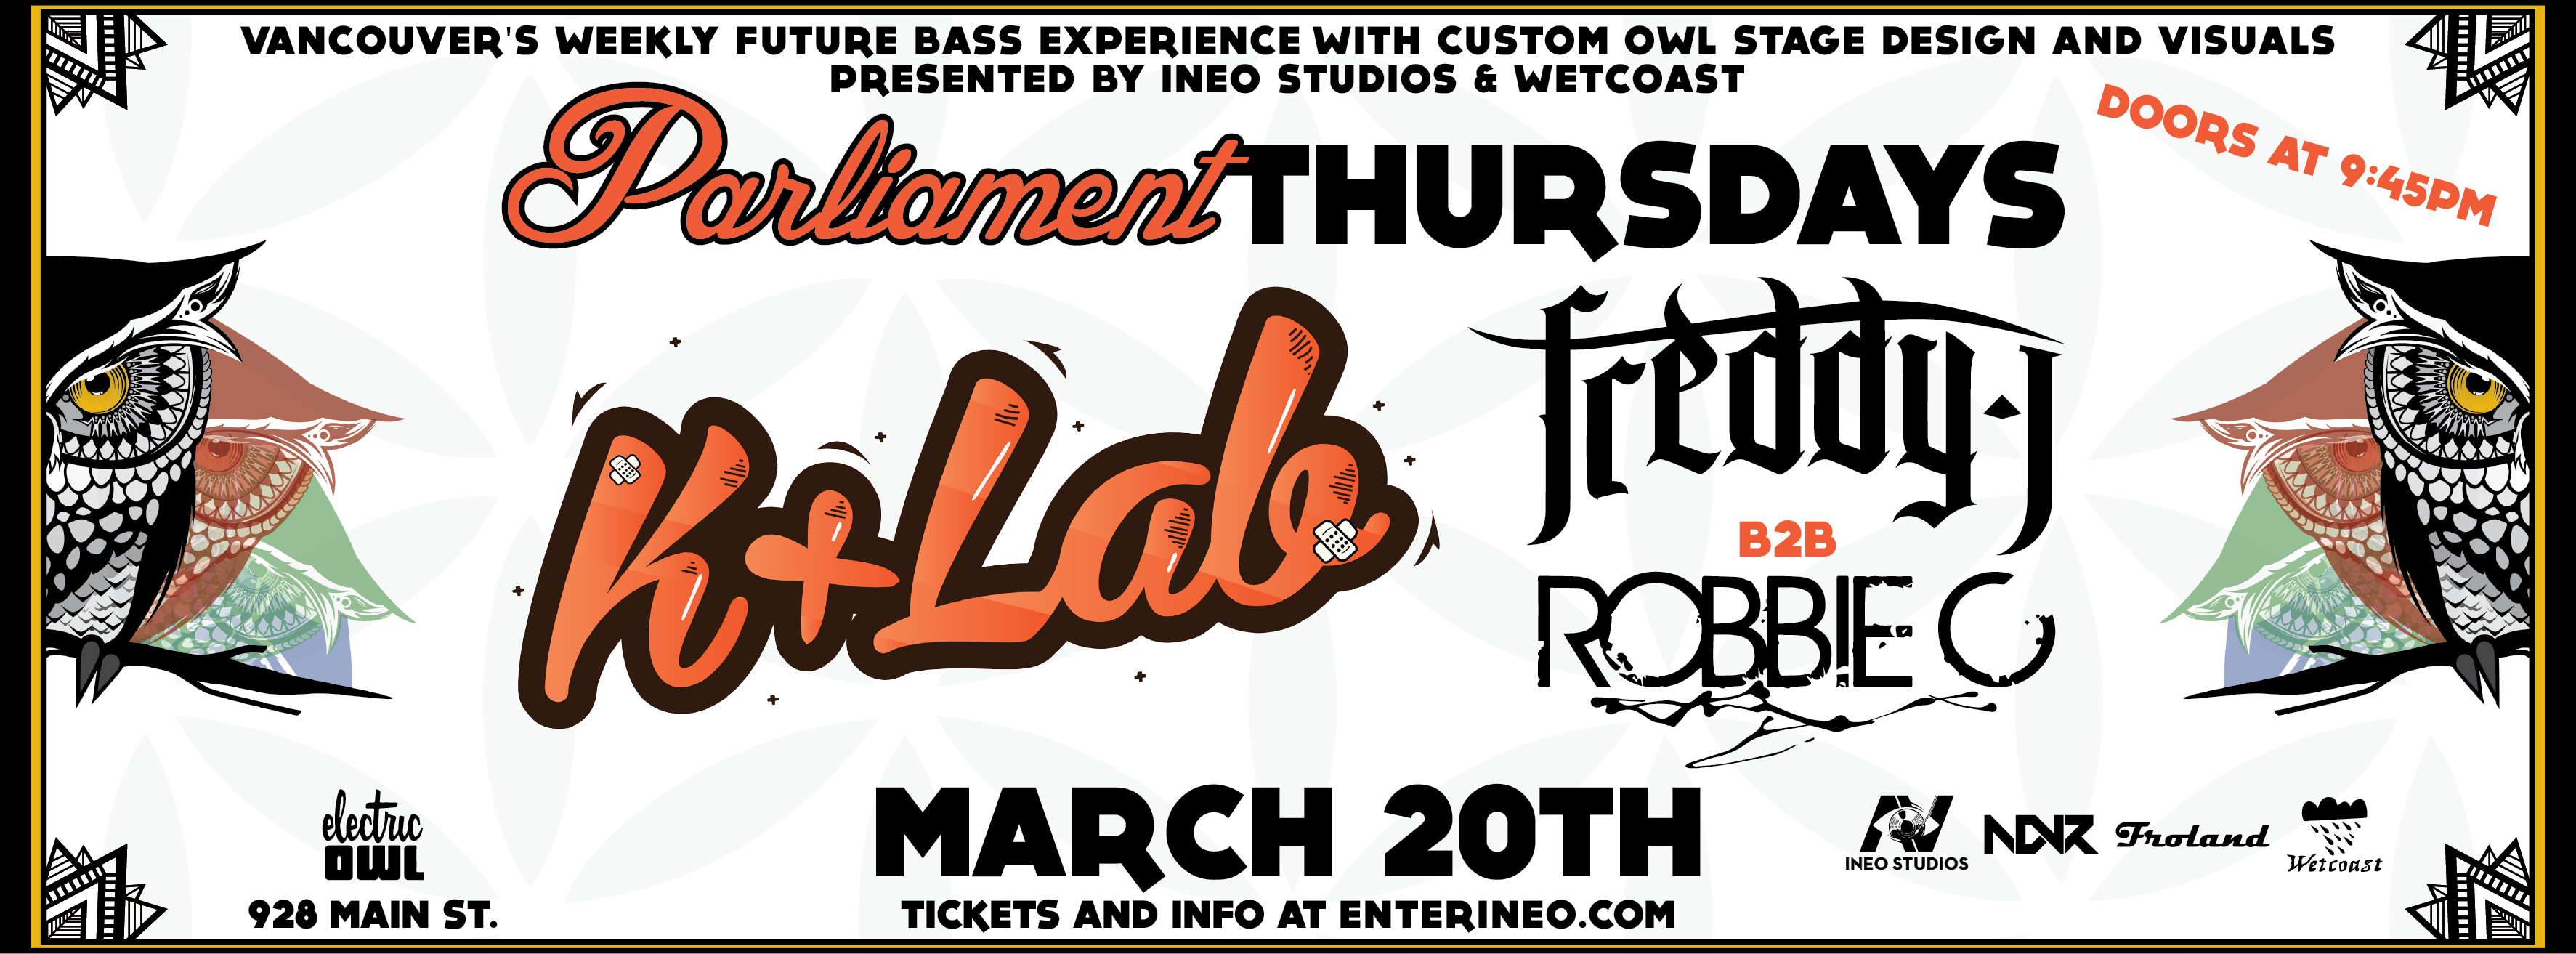 9 Parliament Thursdays FB Banner K LAB FREDDY J-01